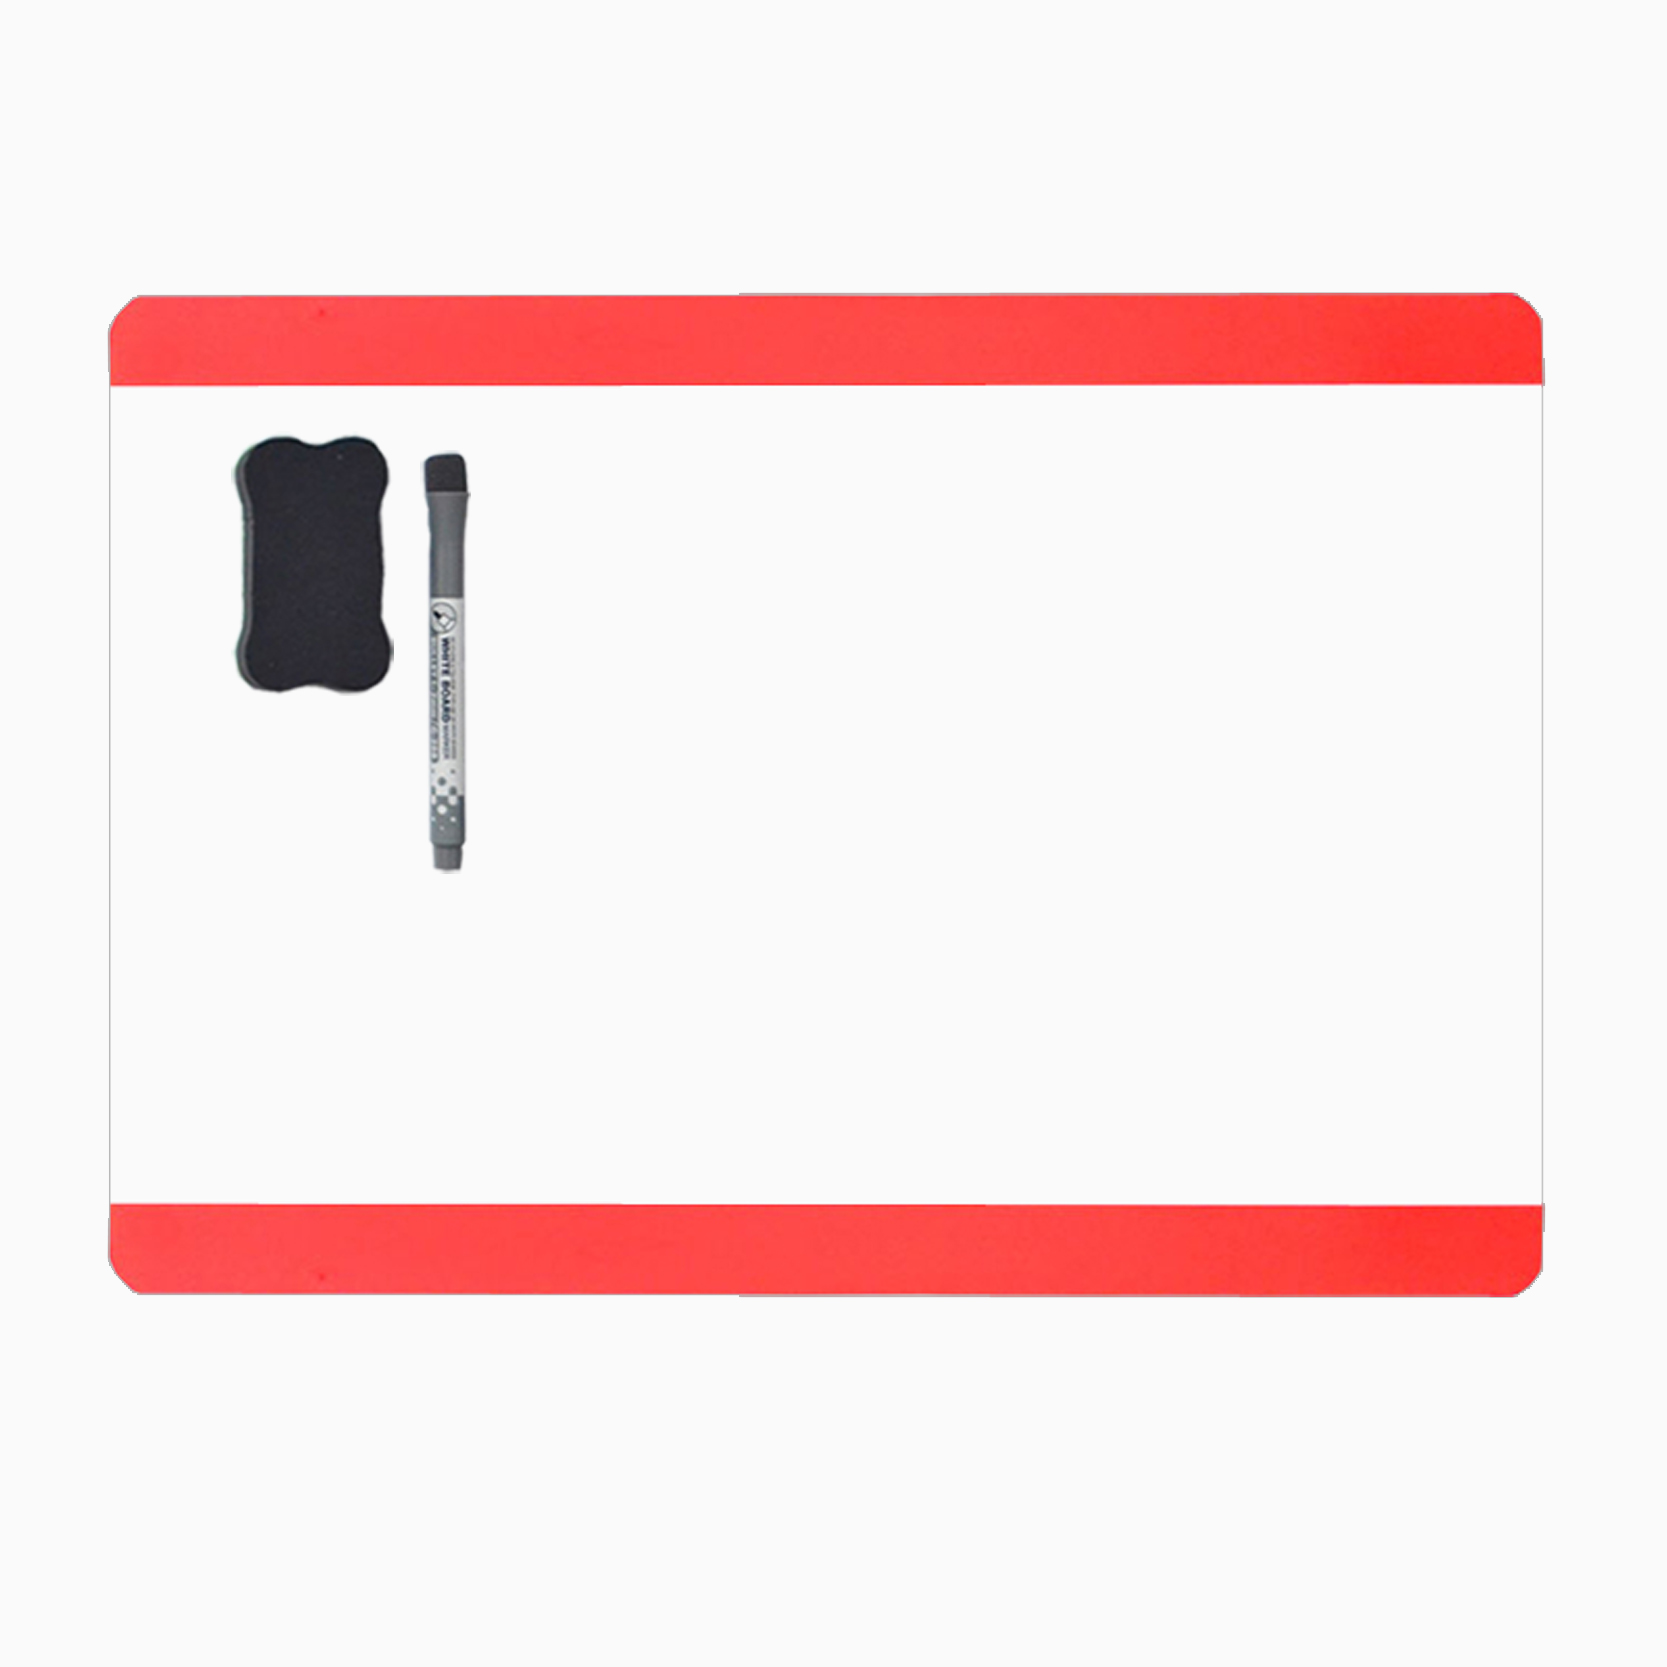 Magnetic Fridge Magnetic Chalkboard Calendar A4 Smart Dry Erase Board Board Magnet Board Fridge Magnetic Fridge[Long Side][Red]